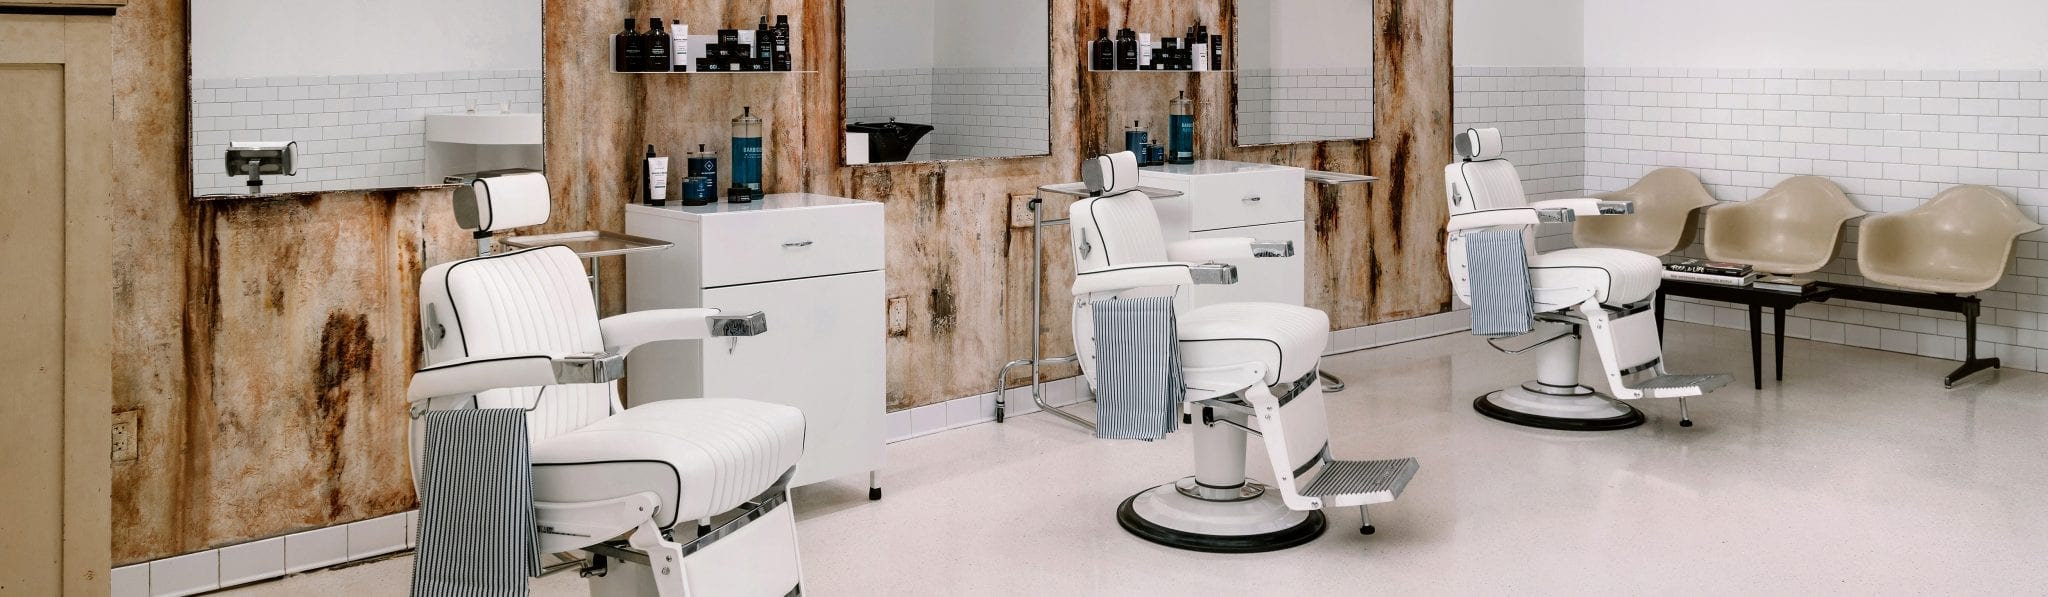 Blind Barber shop with white chairs